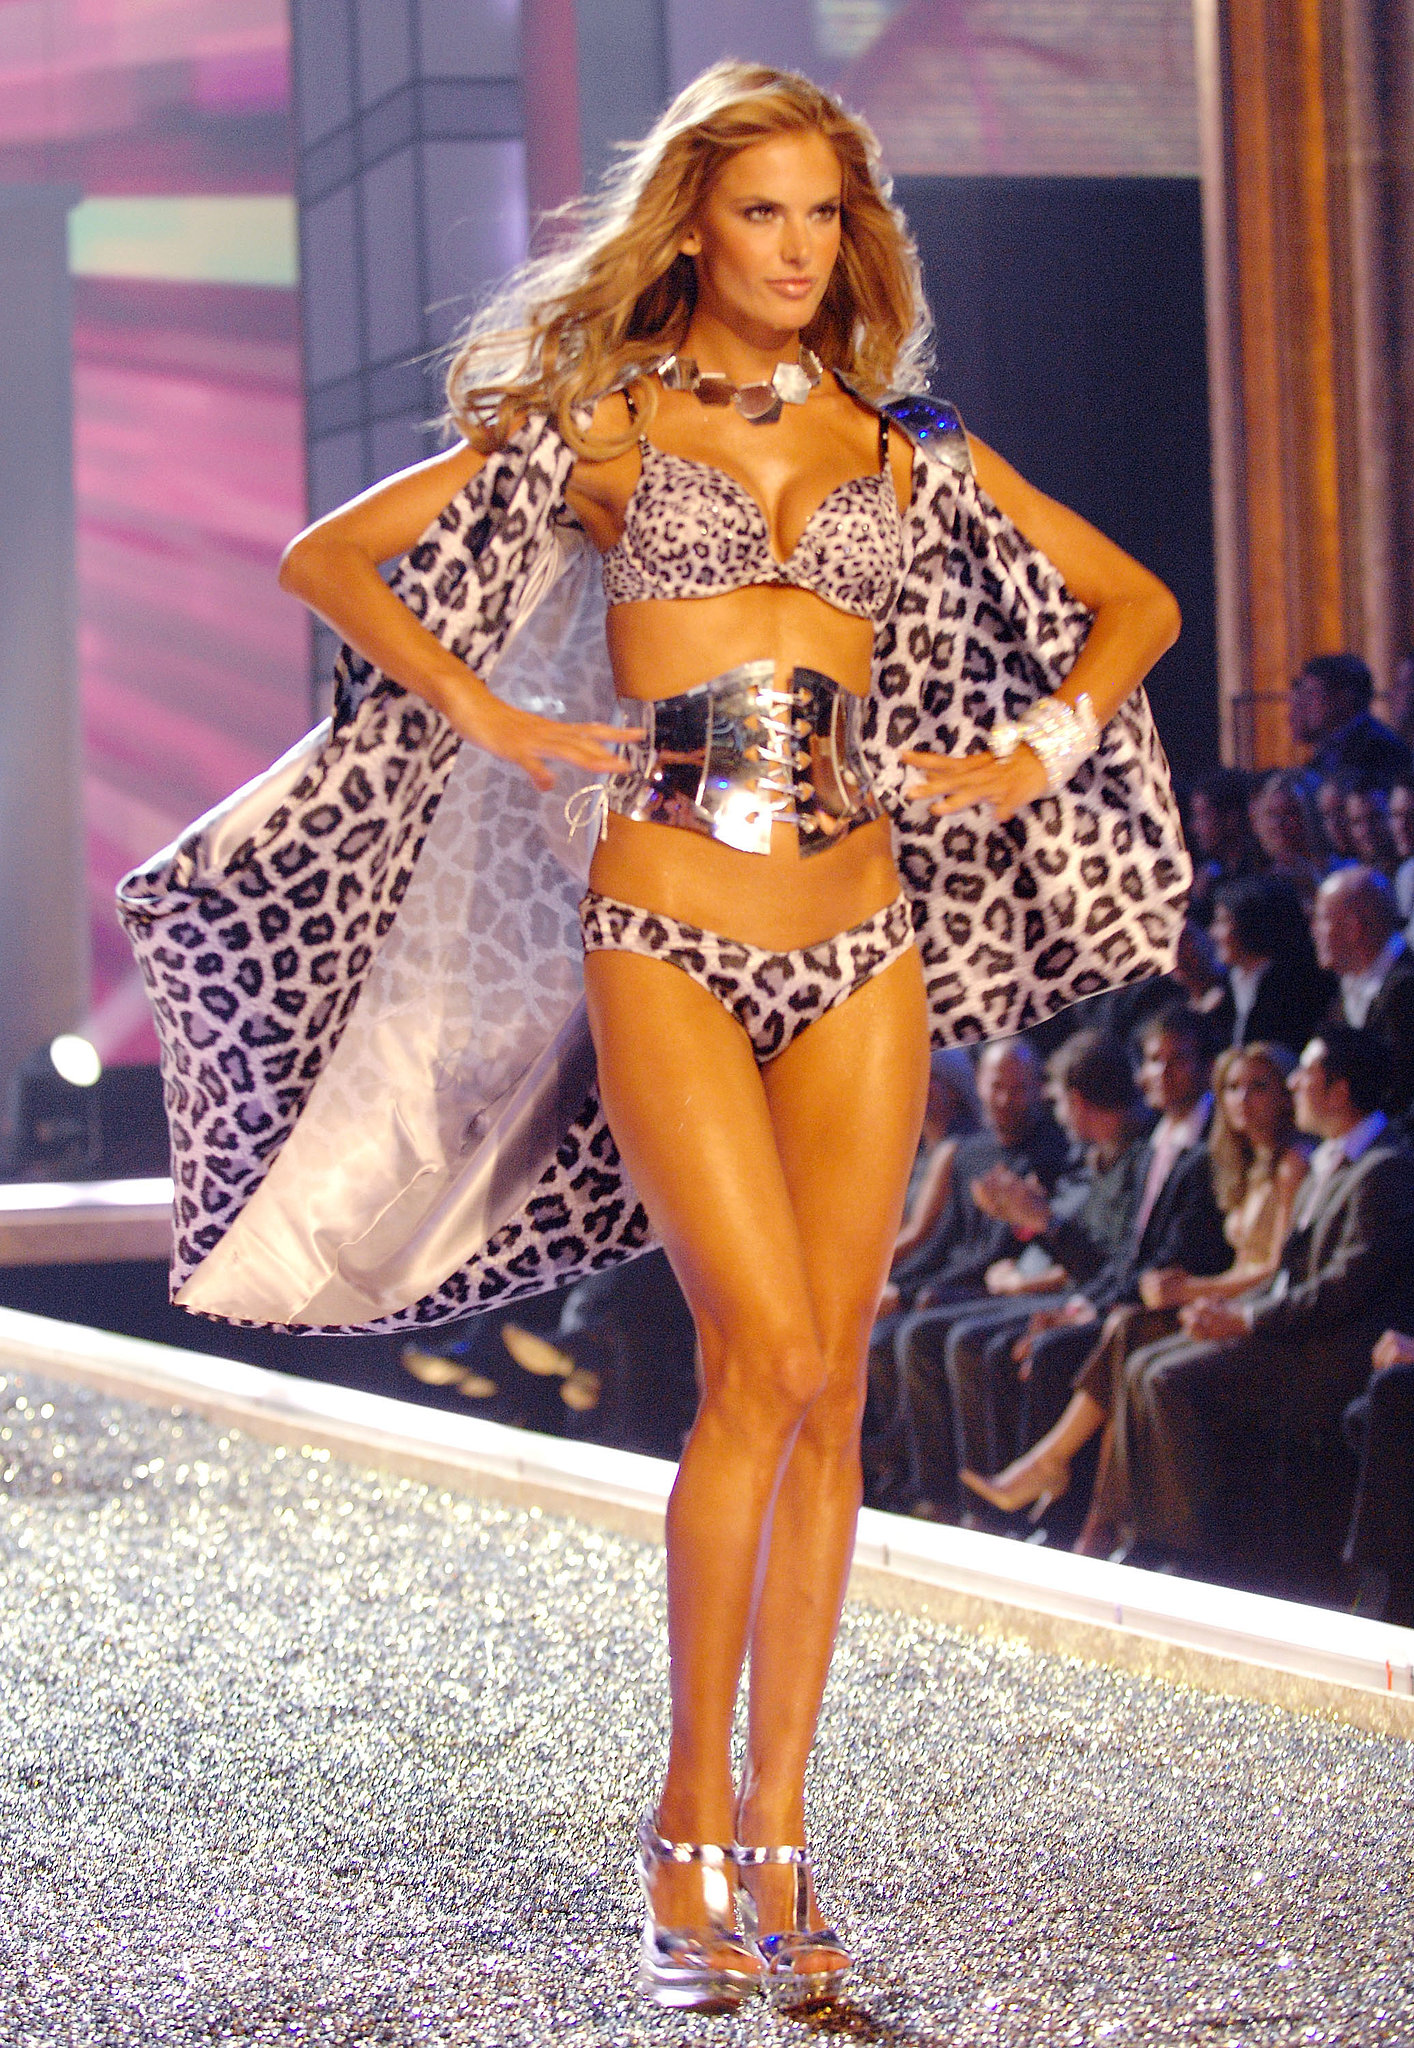 Alessandra channeled superhero-cool on the runway in 2007.